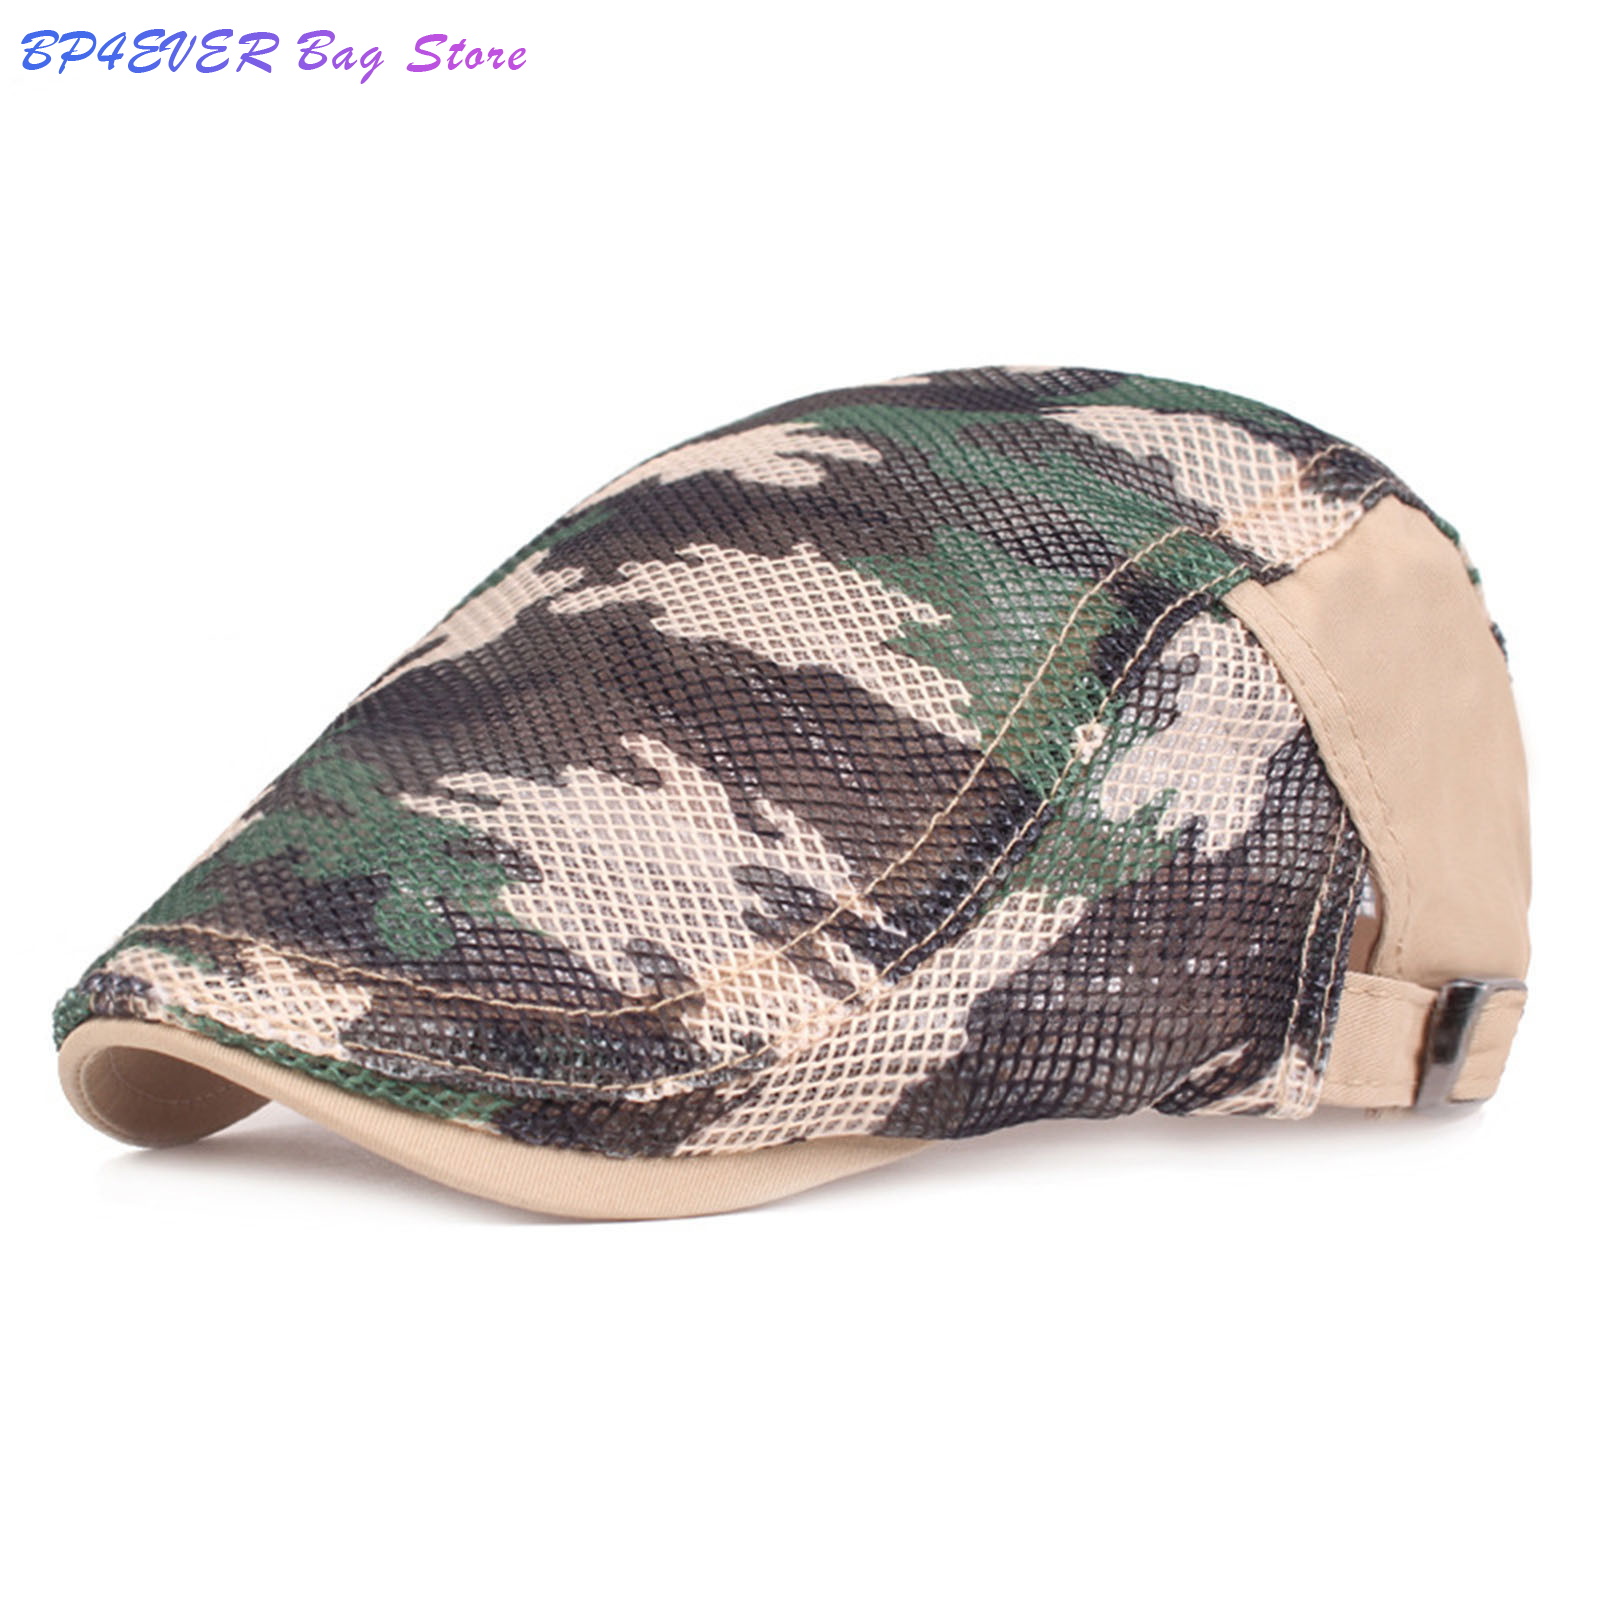 hats for men and Women mesh breathable sun shading art youth Berets Camouflage Prin mesh breathable sun shading art youth Berets